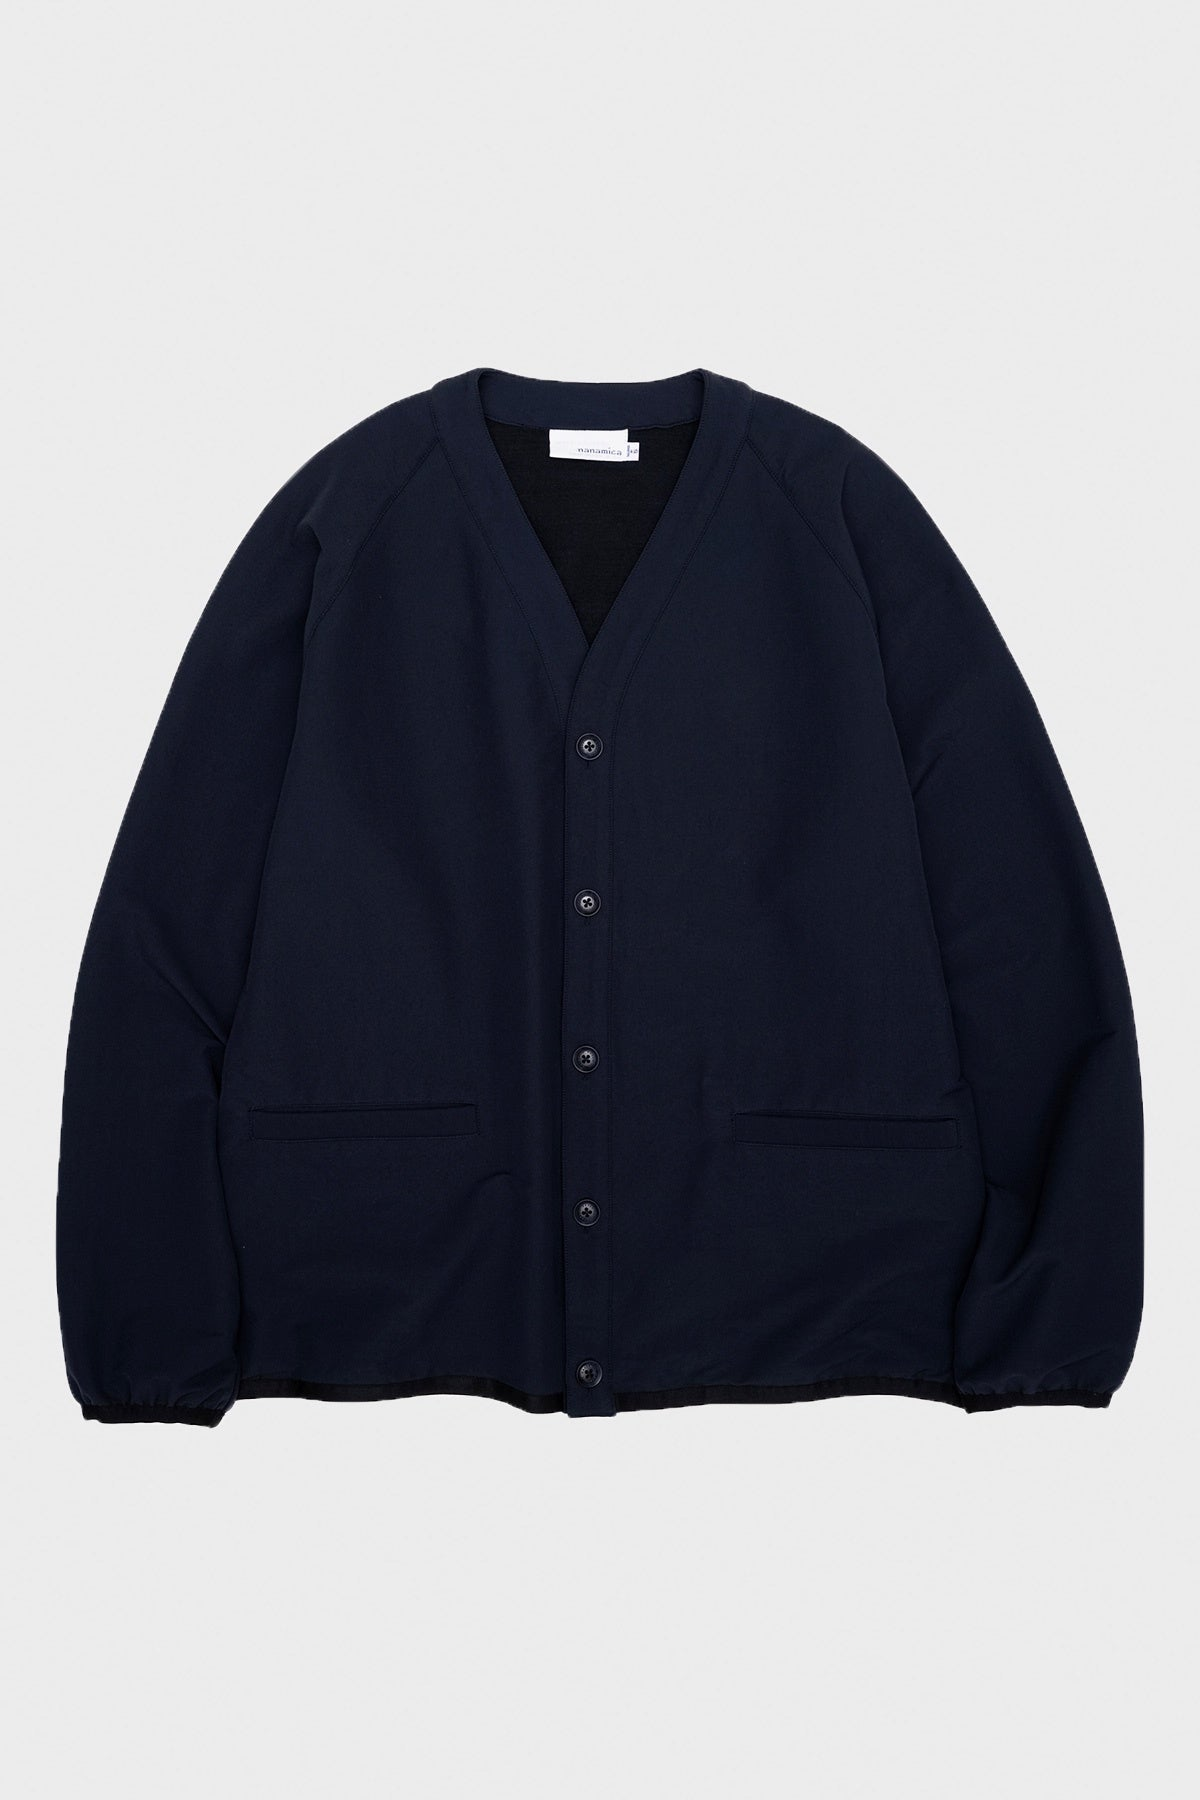 nanamica - Breath Tune Cardigan - Dark Navy - Canoe Club